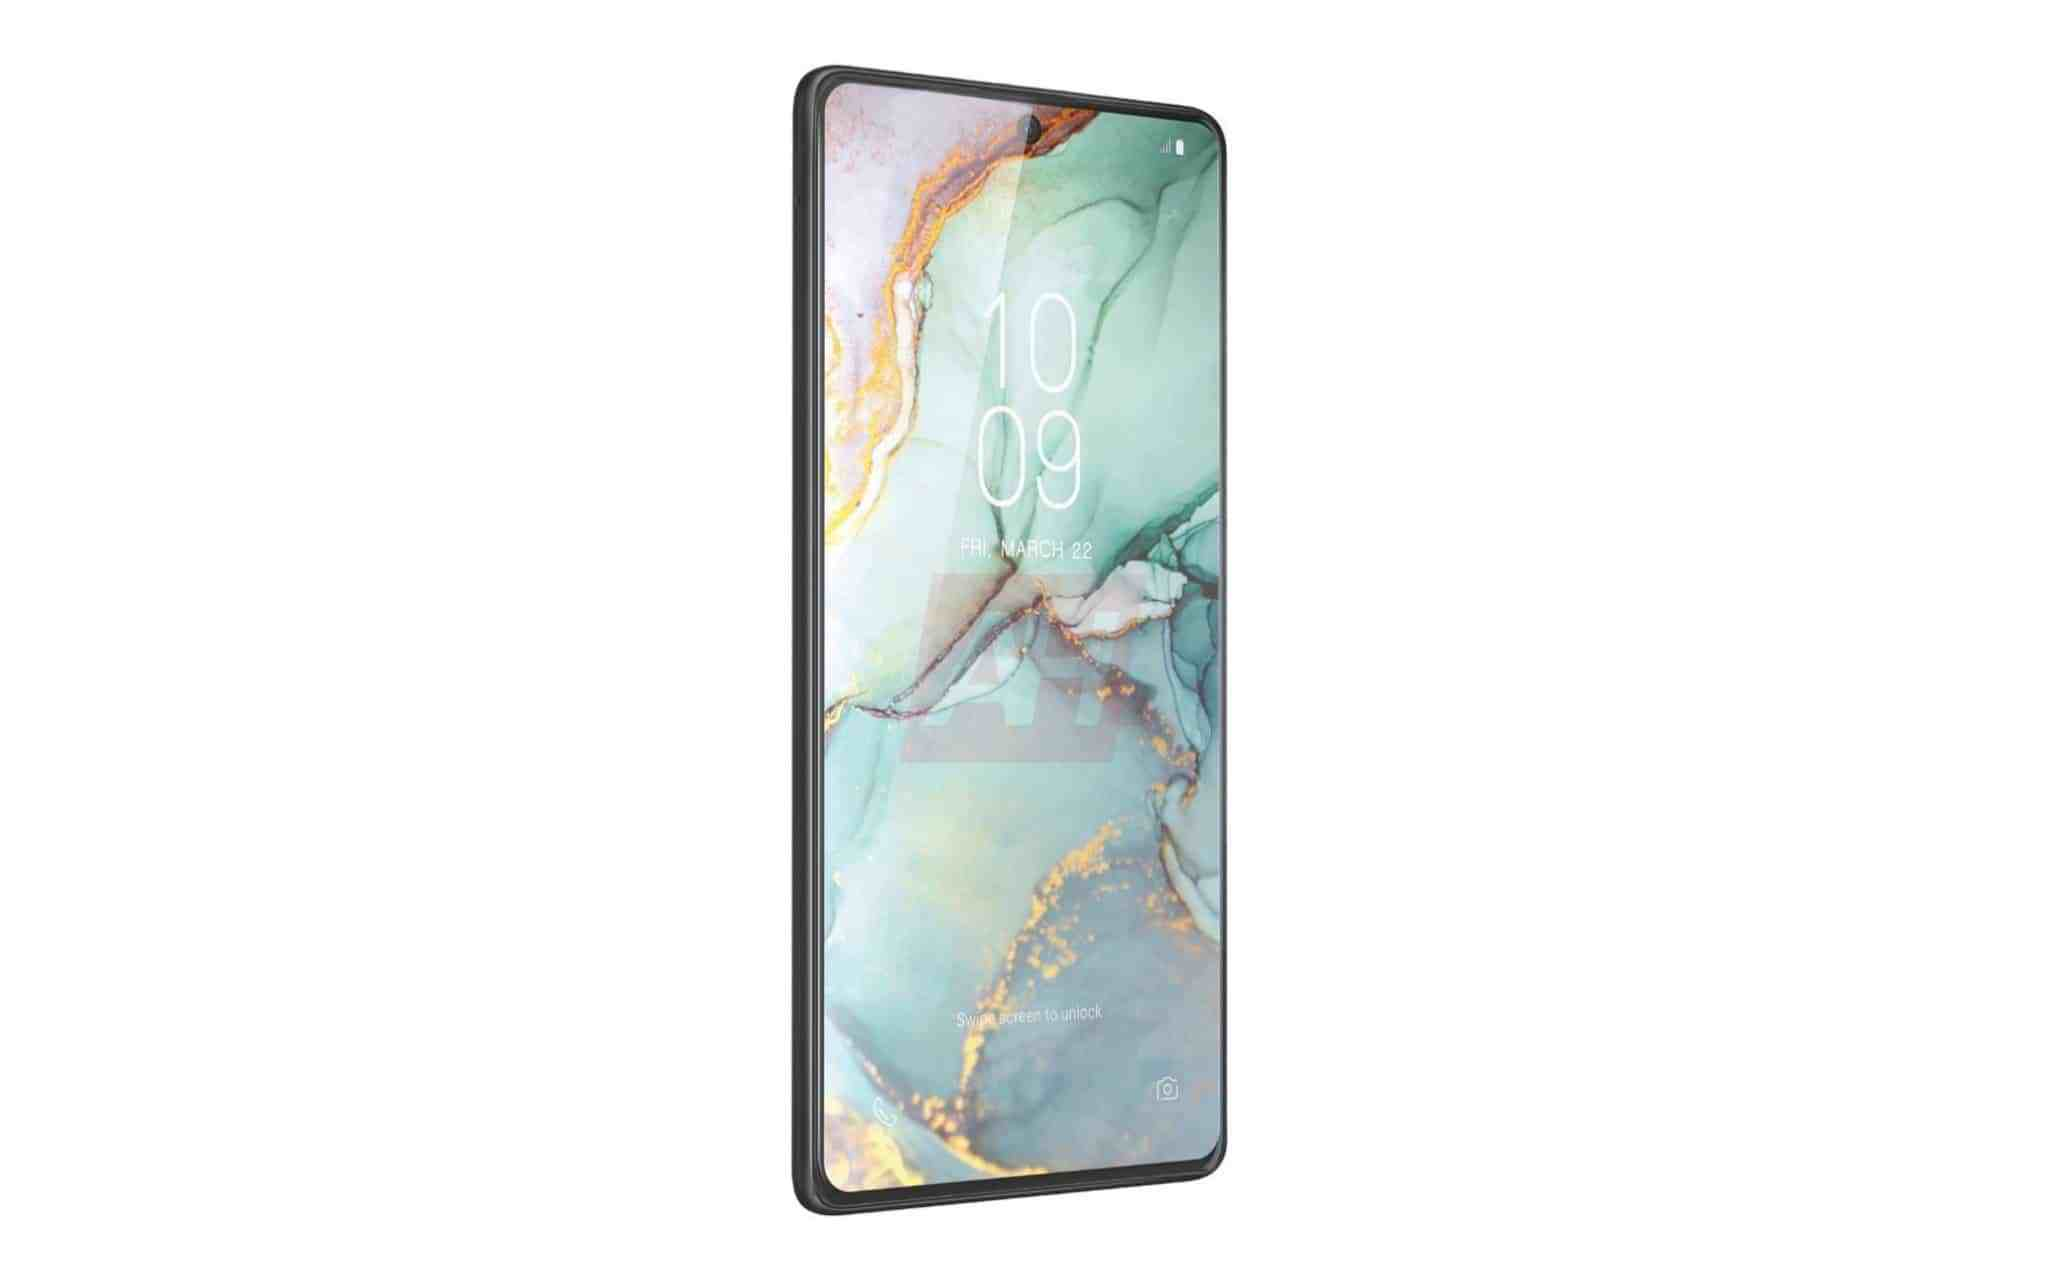 Samsung Galaxy S10 Lite : son design se confirme encore plus avec ce document